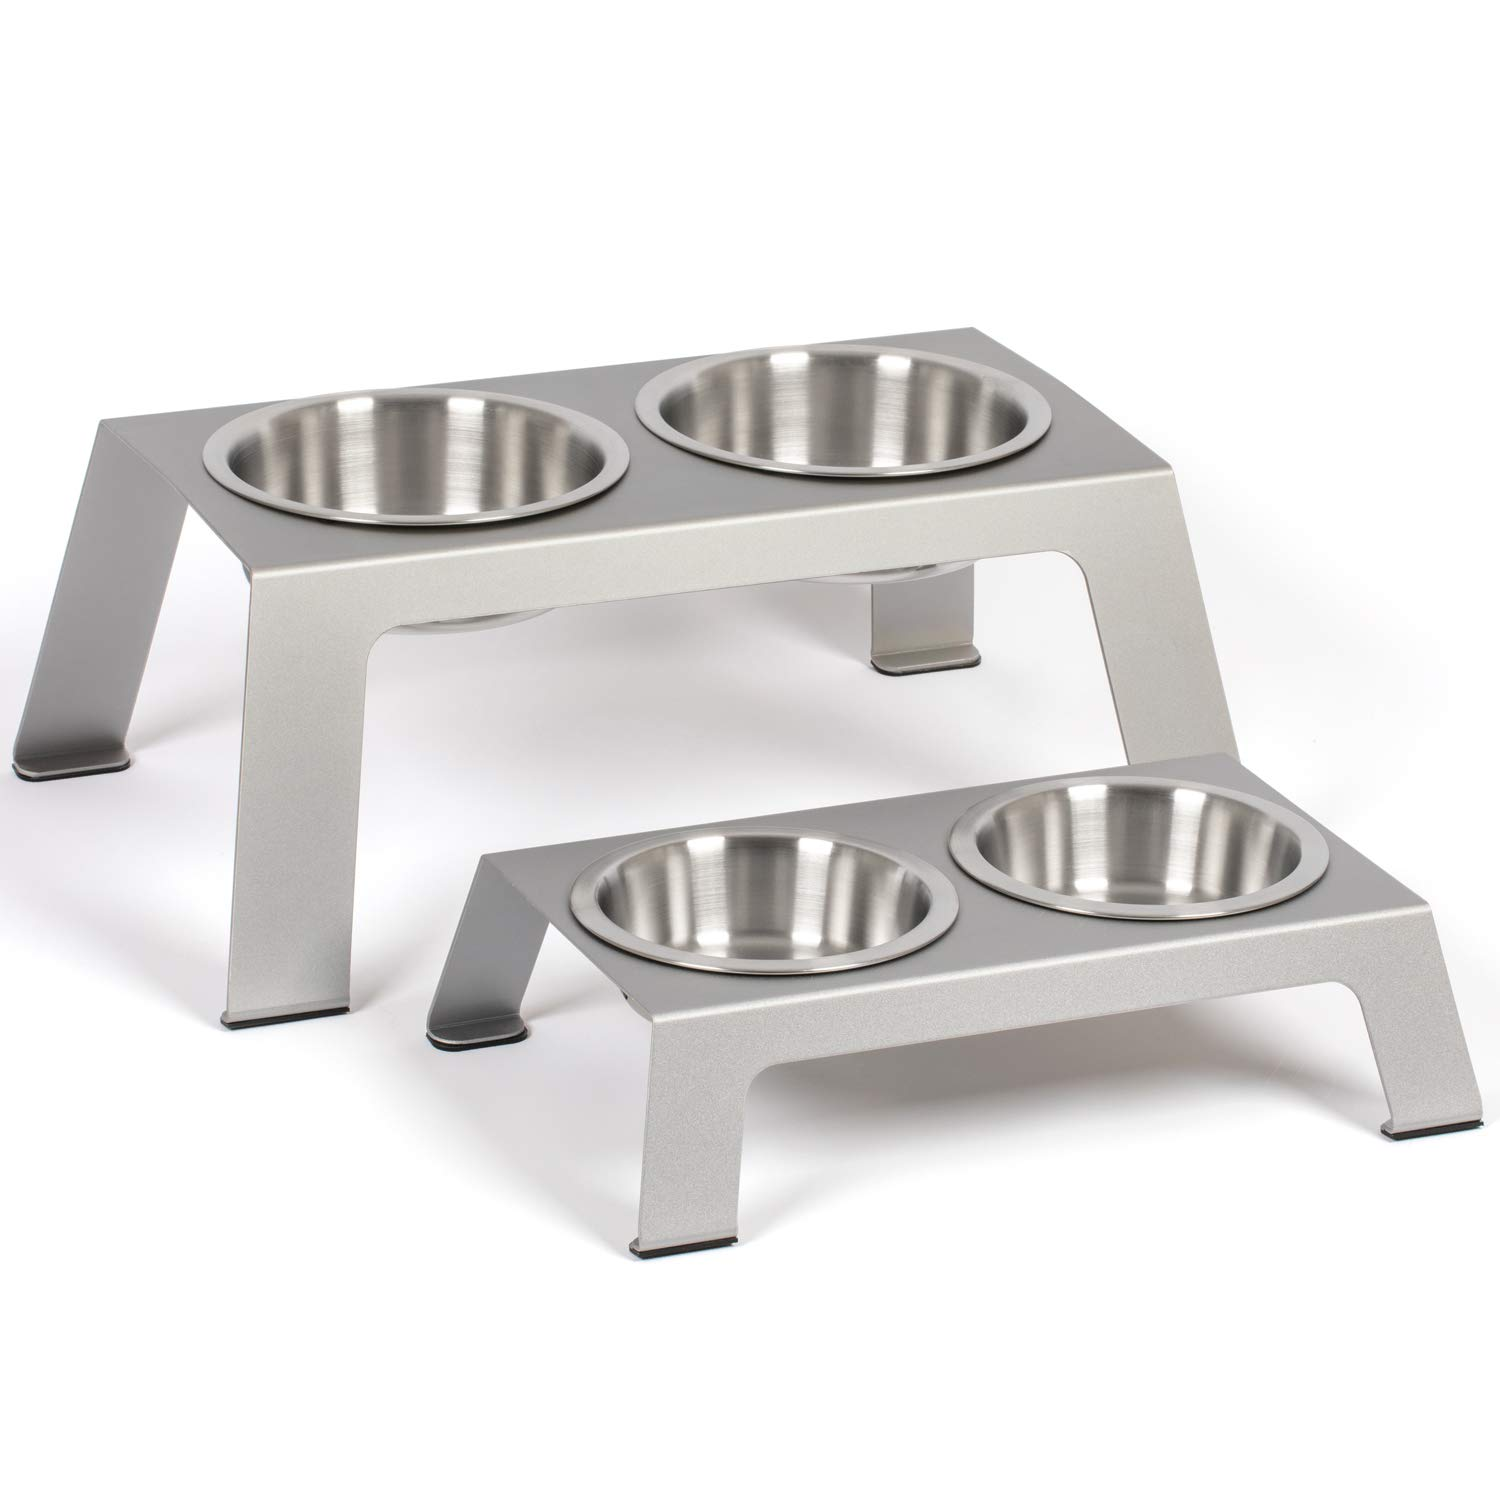 """PetFusion Elevated Dog Bowls, Cat Bowls -- Premium anodized Aluminum feeder (Short 4"""", Tall 8"""" options). US FOOD GRADE Stainless Steel raised bowls    """"I've been very happy with this purchase. Came with two deeper bowls and one shallow bowl. Very well made and bowls clean well by hand or in dishwasher""""   Benefits of anodized aluminum: (I) more corrosion resistant than most grades of stainless steel. (Ii) Color infused so will not chip. (Iii) long lasting, light weight, and easy to clean  Award winner: (I) The conscious cat editor's choice Award: top 10 best New product. (Ii) 2019 pet life today's #2 best dog bowl stand  Promotes your pet's Wellness: (I) elevated to support digestive health & make mealtime more comfortable. (Ii) 3 US food grade stainless steel Bowls. 2 @ 3 cups each + 1 shallow (1.1"""", 13 oz) to prevent whisker fatigue. Bowl sizes also available separately.(Iii) Please READ vet recommendations below  Vets recommend: (I) 1 food bowl per pet, especially in event of special nutritional needs & Aggressive behavior. (Ii) community water bowl typically ok. (Iii) dogs need 1-2 cups of water per day for every 10 lbs Weight. Cats about 5-10 oz Water  You should know: (I) 17.2 x 10.4 x 4 inches. (Ii) anti-slip feet & bowl insets to keep things neat and tidy. (Iii) sized for small dogs & CATS. (Iv) 12 month Warranty on any part that is broken due to manufacturer defect  If you have any product questions or suggestions, or have concerns with a PetFusion product you already purchased, We'd love to hear from you."""